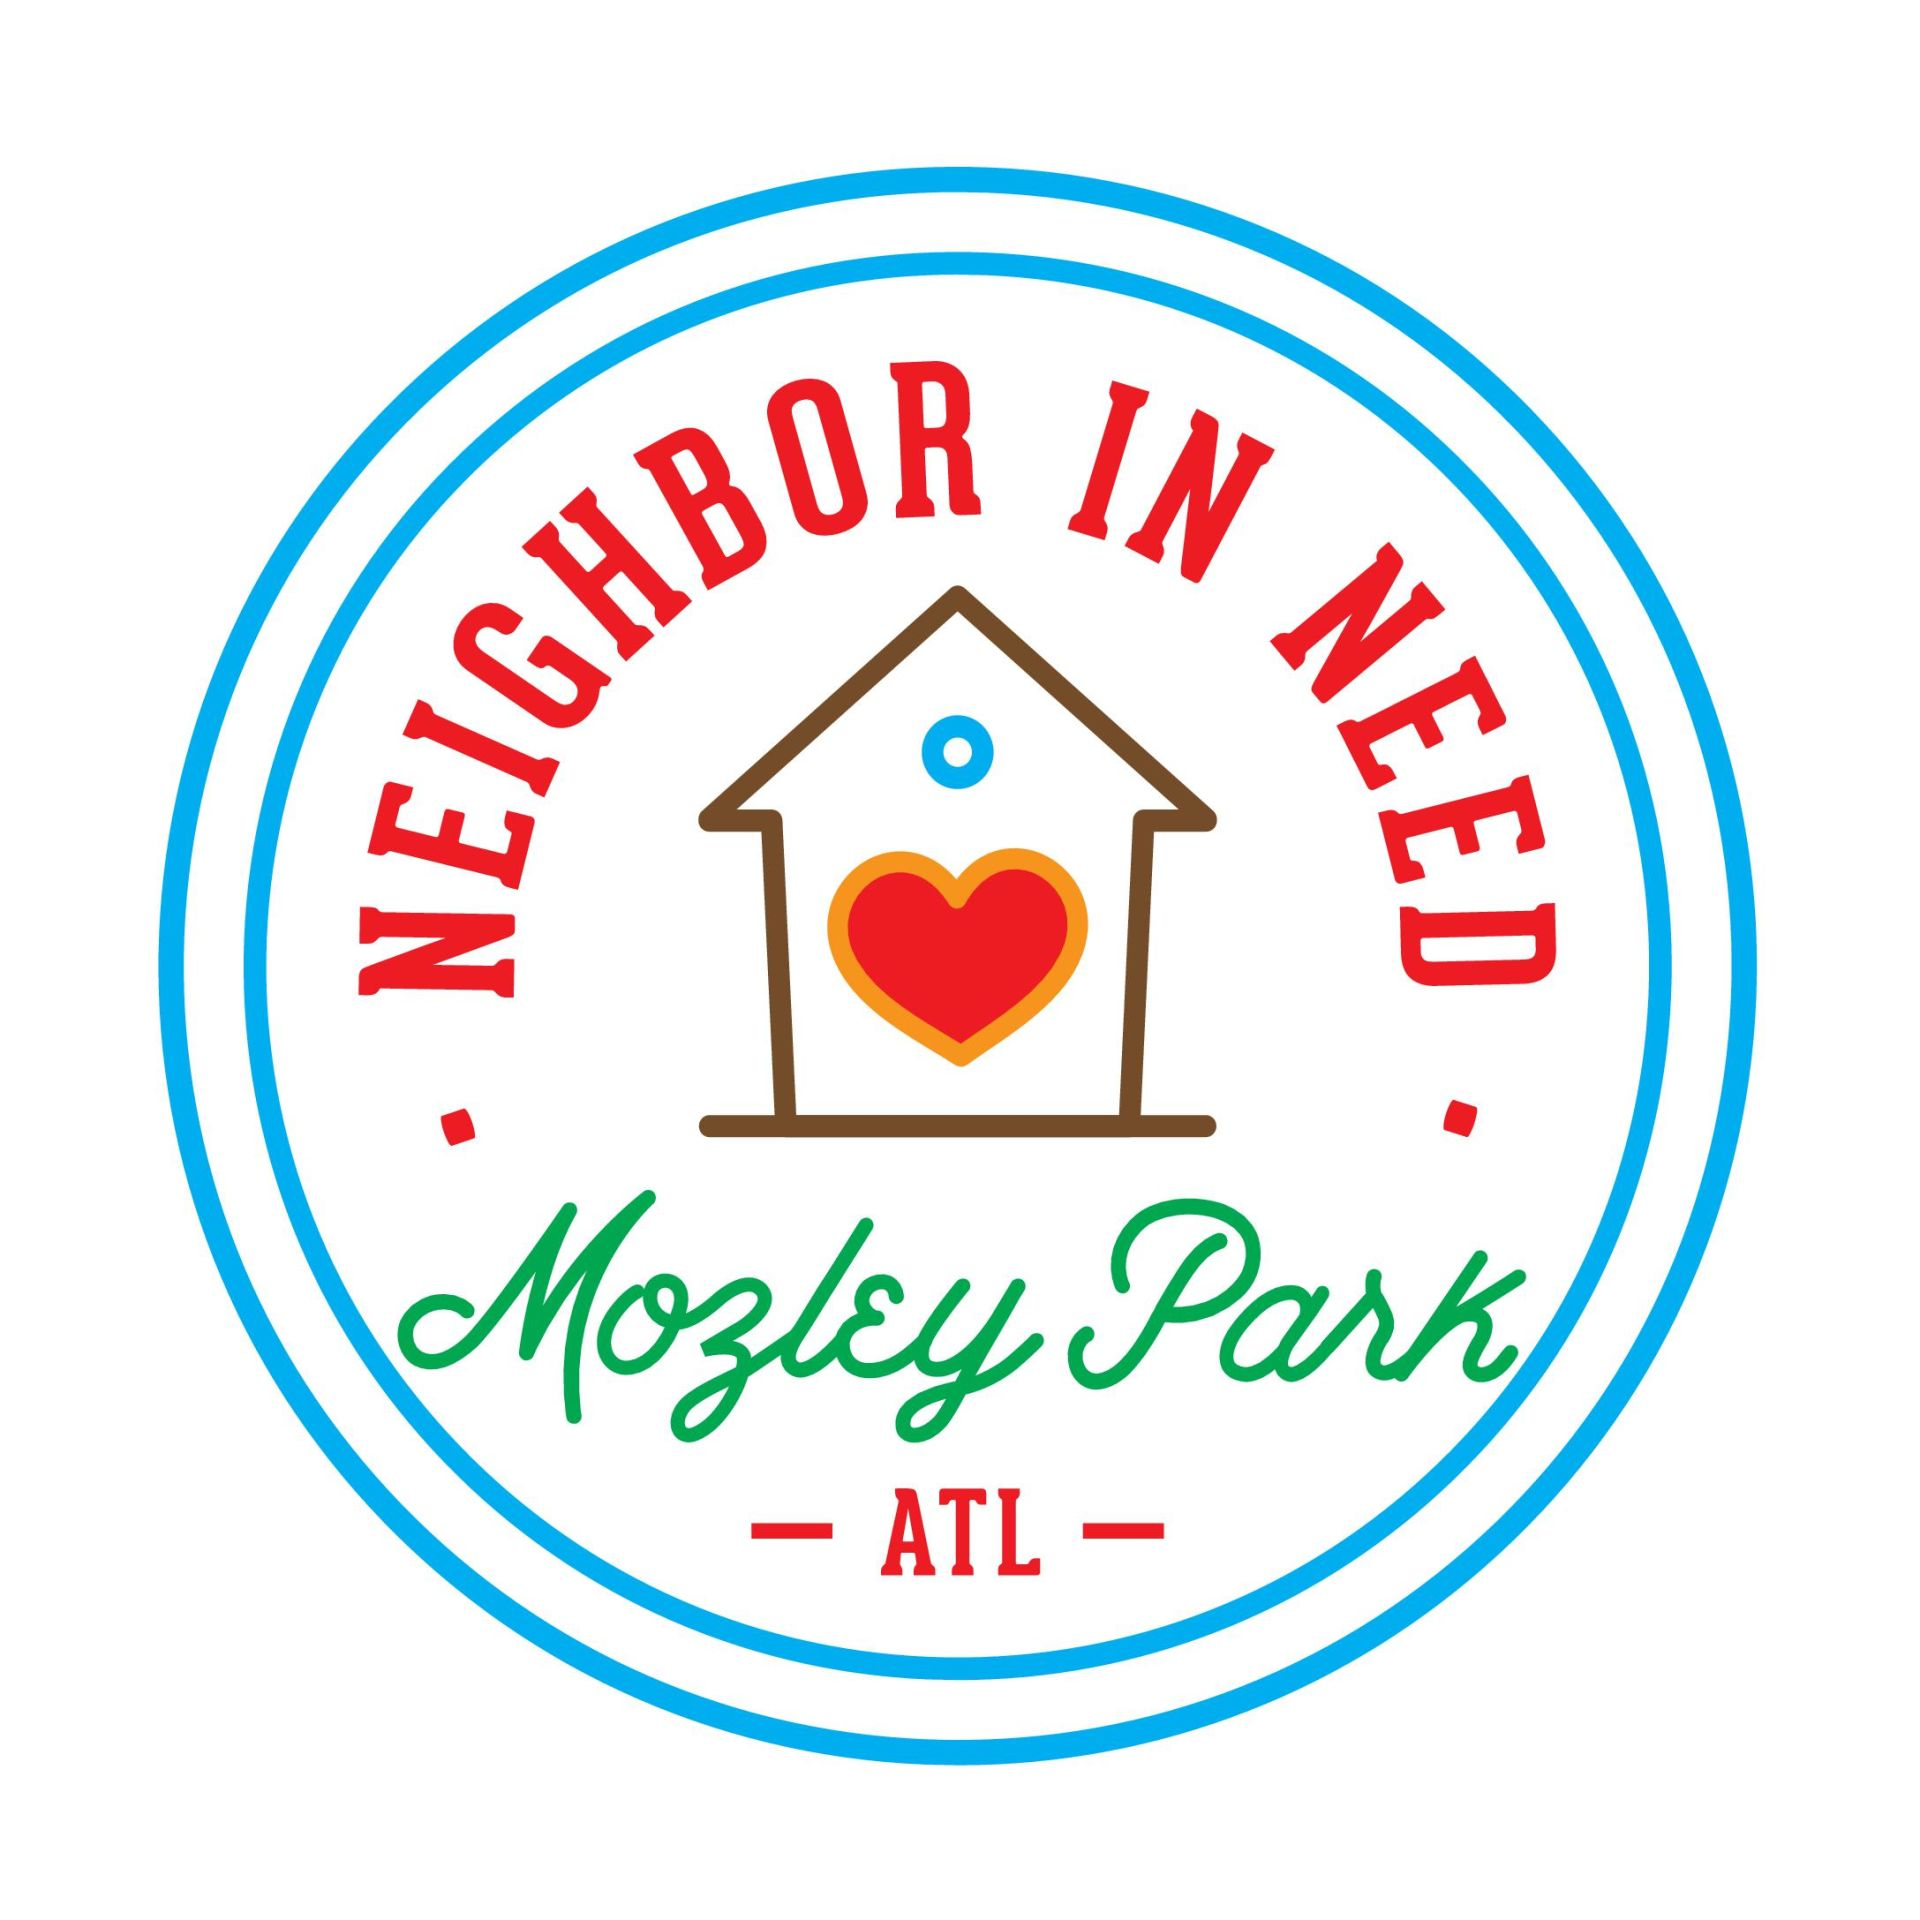 Neighbor In Need/Mozley Park